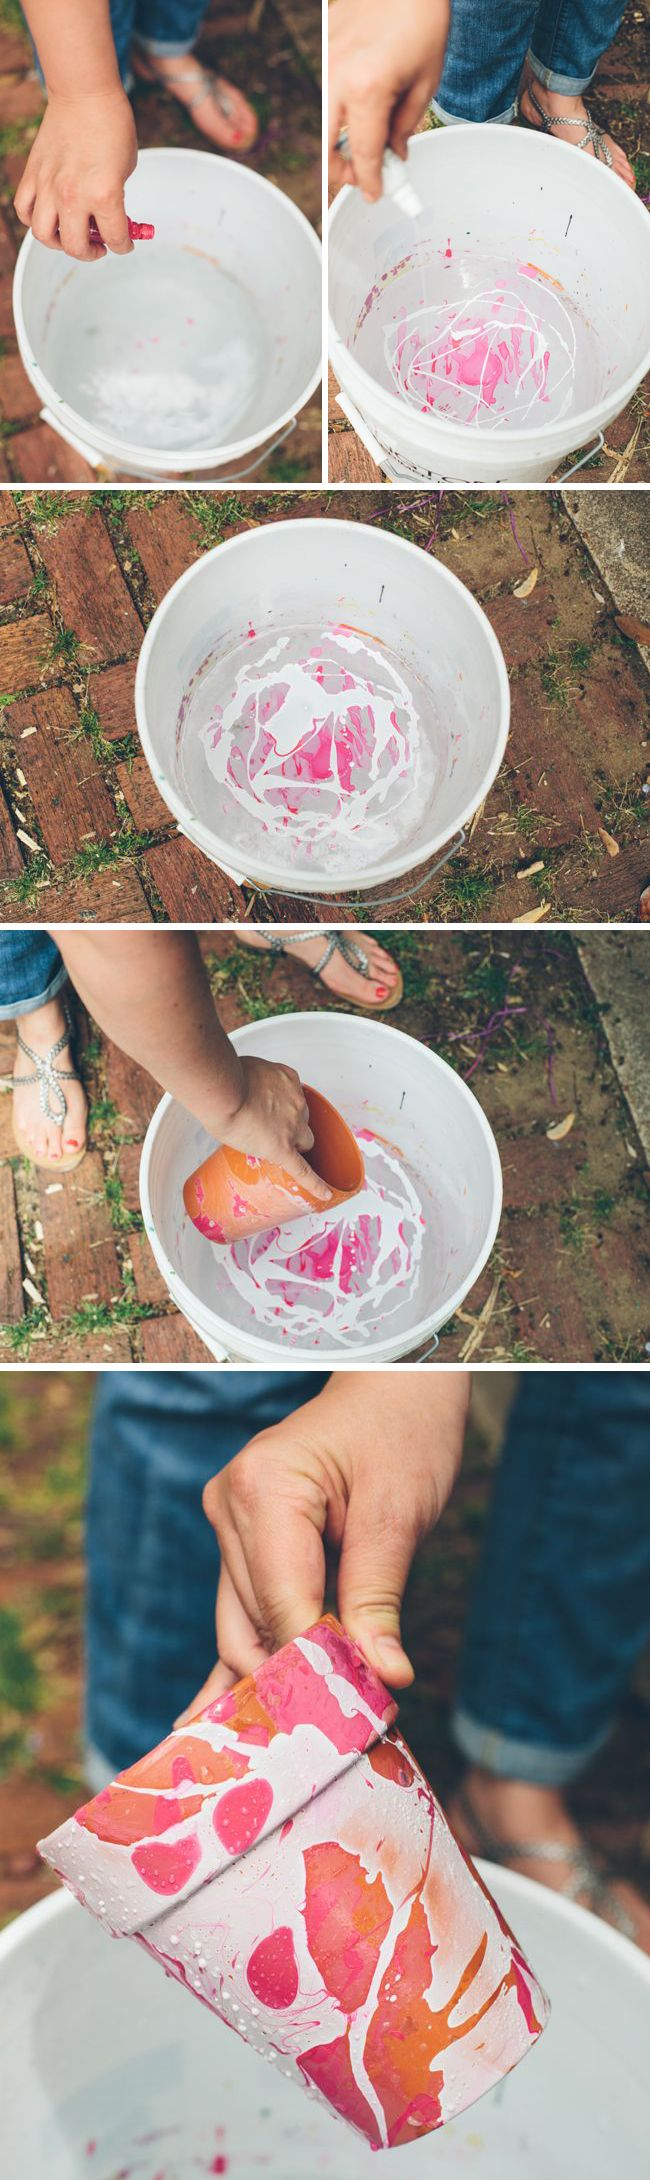 DIY: nail polish marbled planters